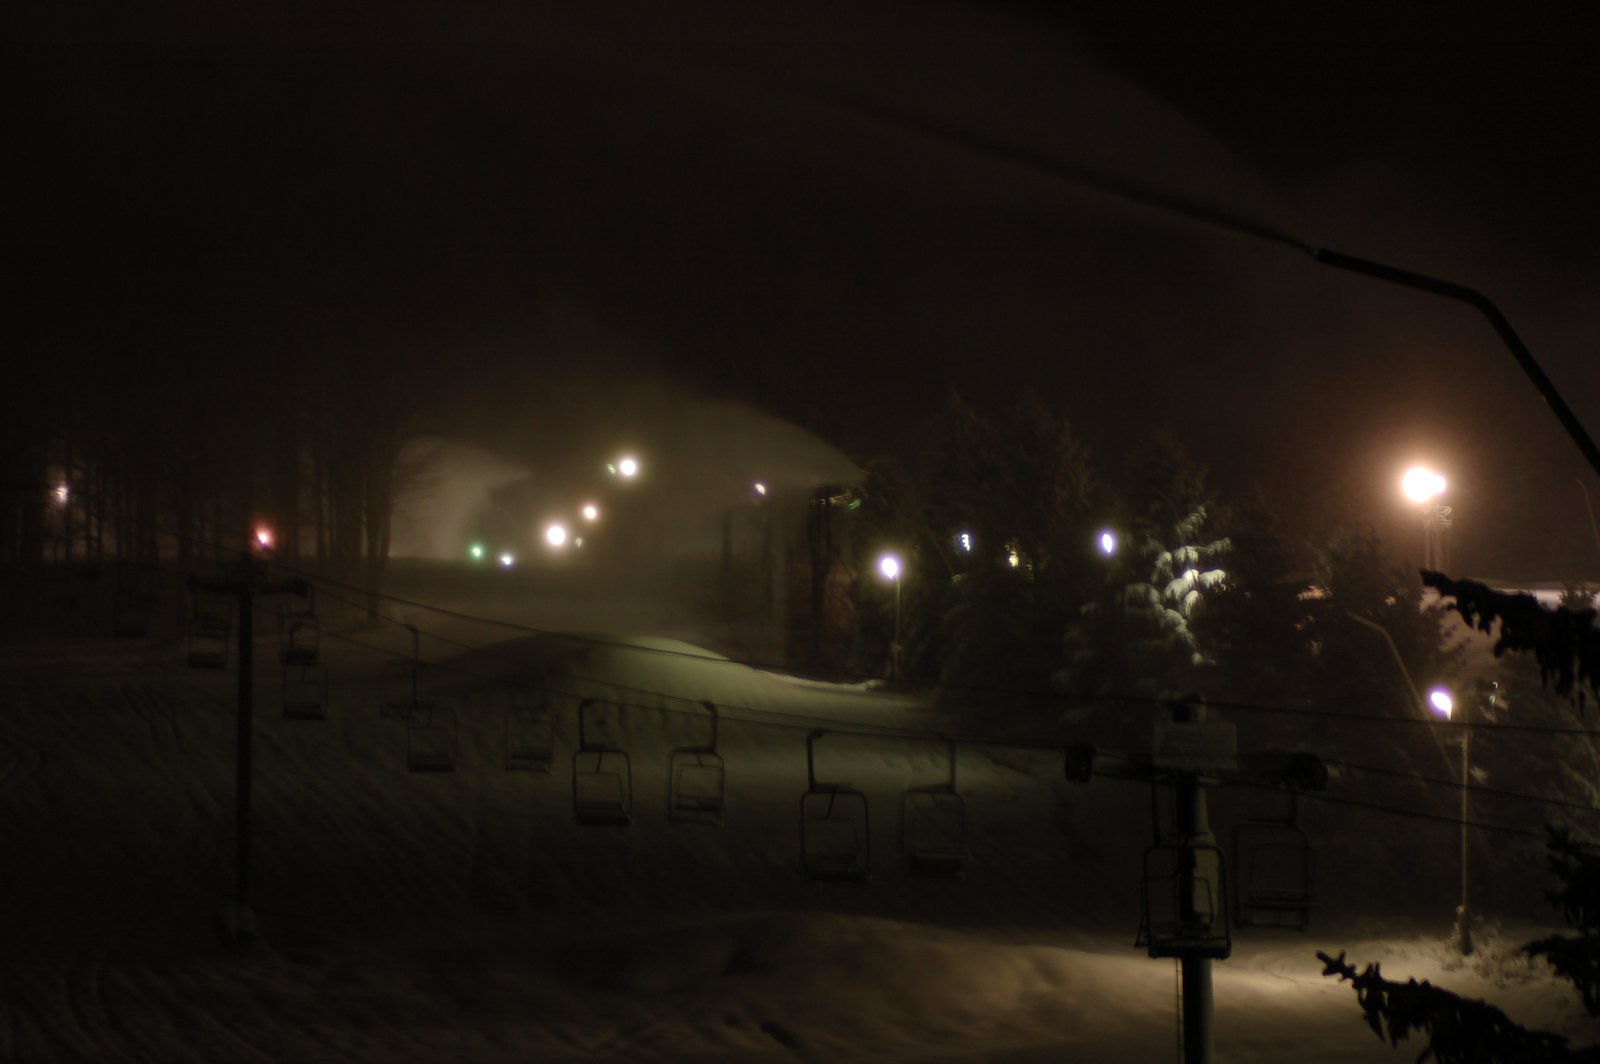 4am snowmaking